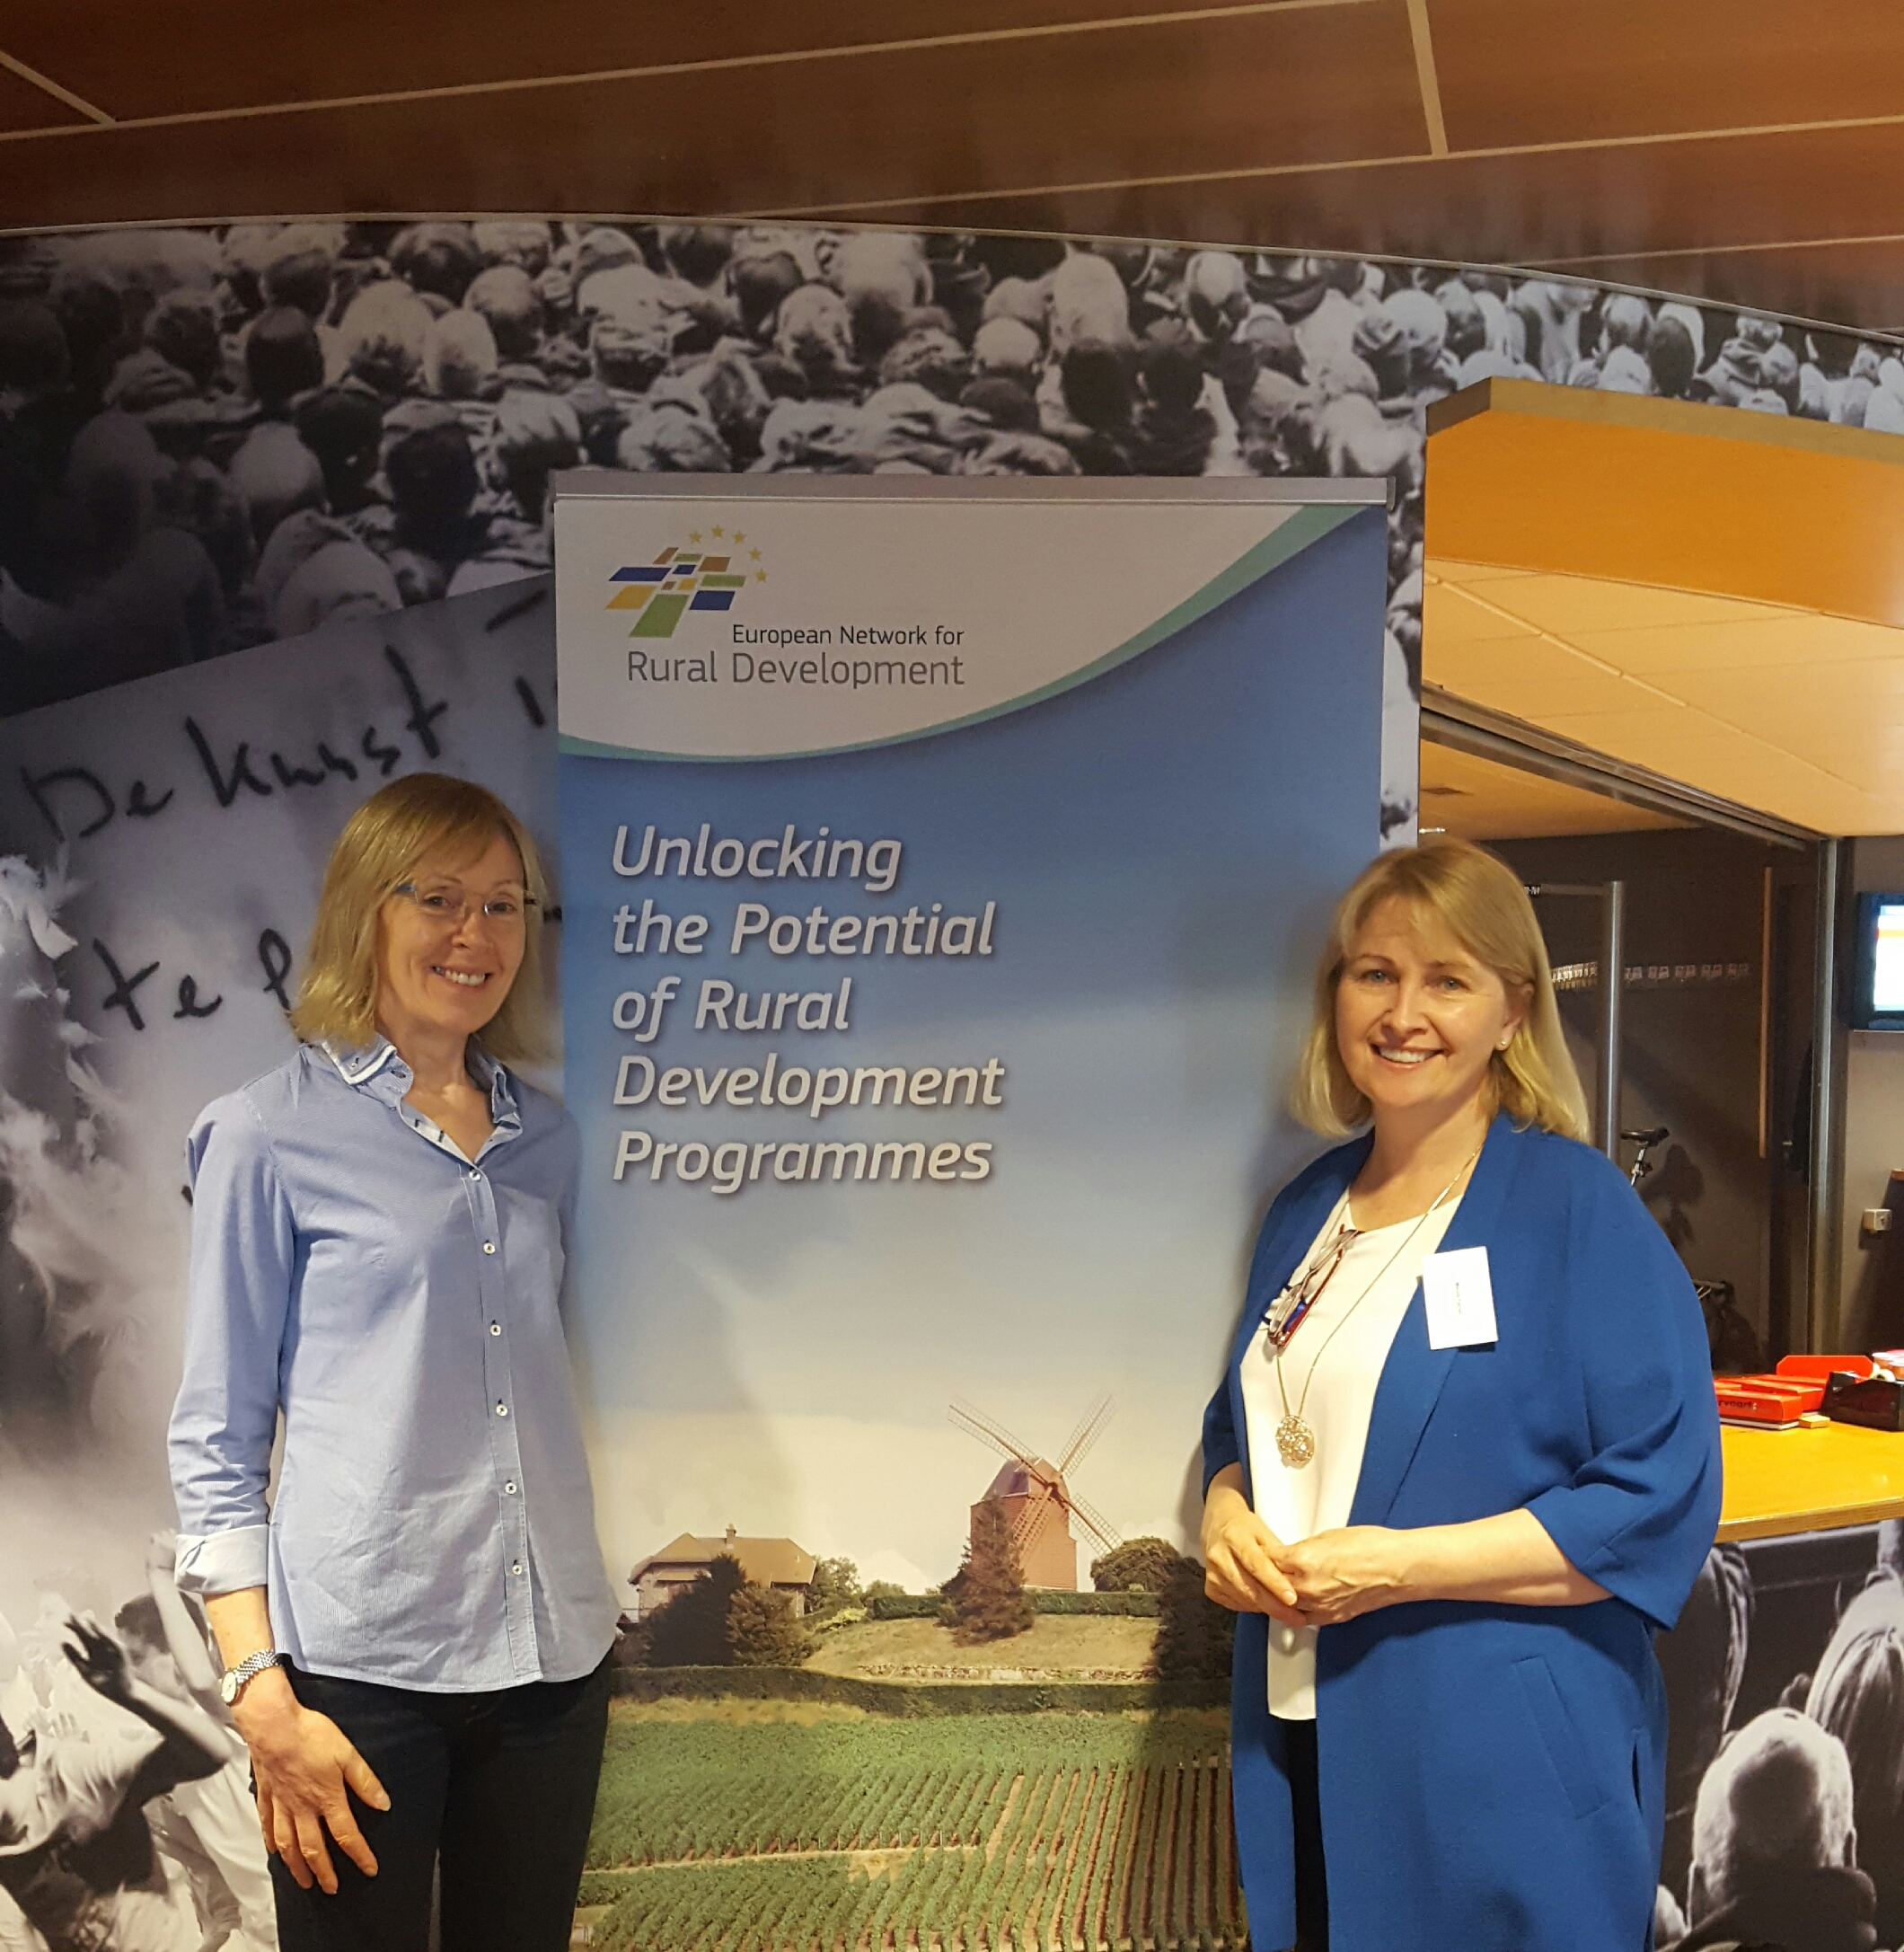 Dr Marie Mahon and Dr Maura Farrell at ENRD Conference in Amsterdam